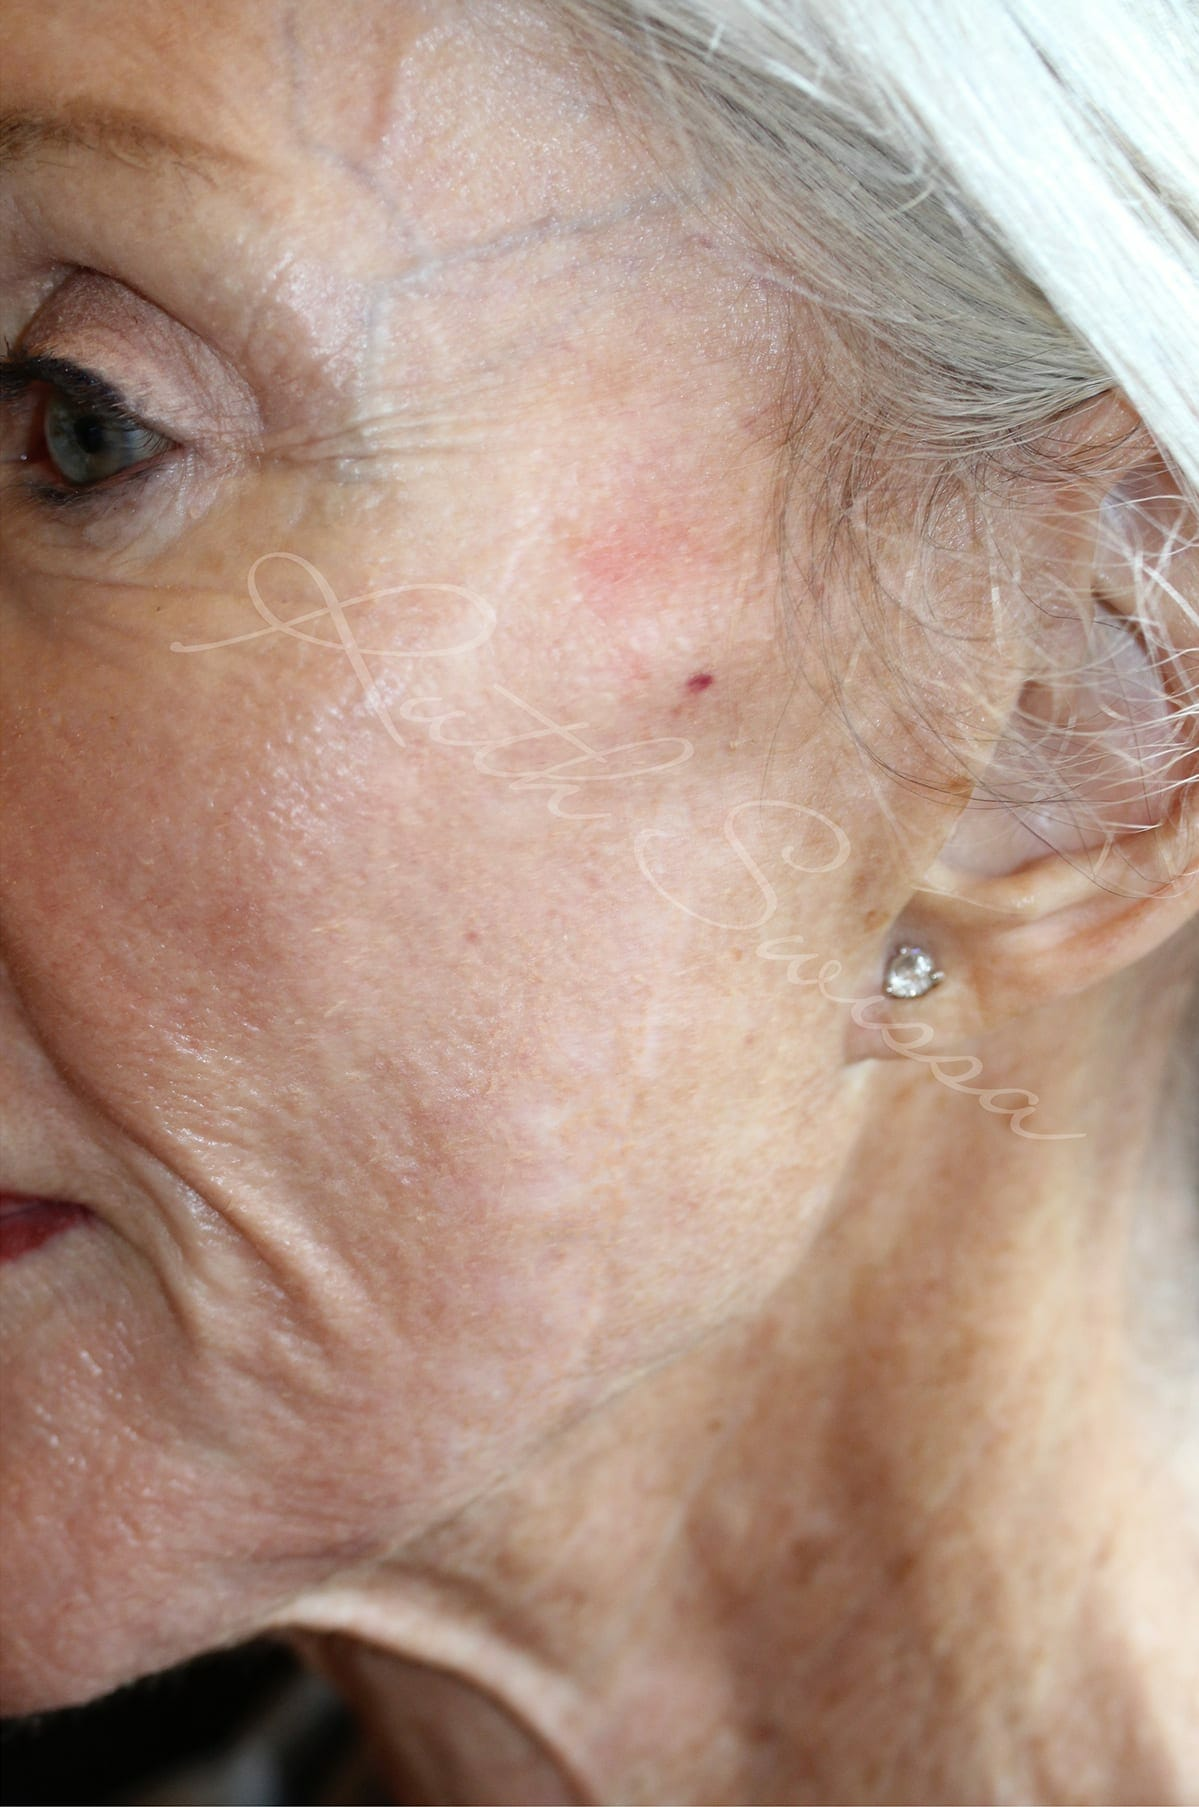 Permanent Makeup for Scar Camouflage